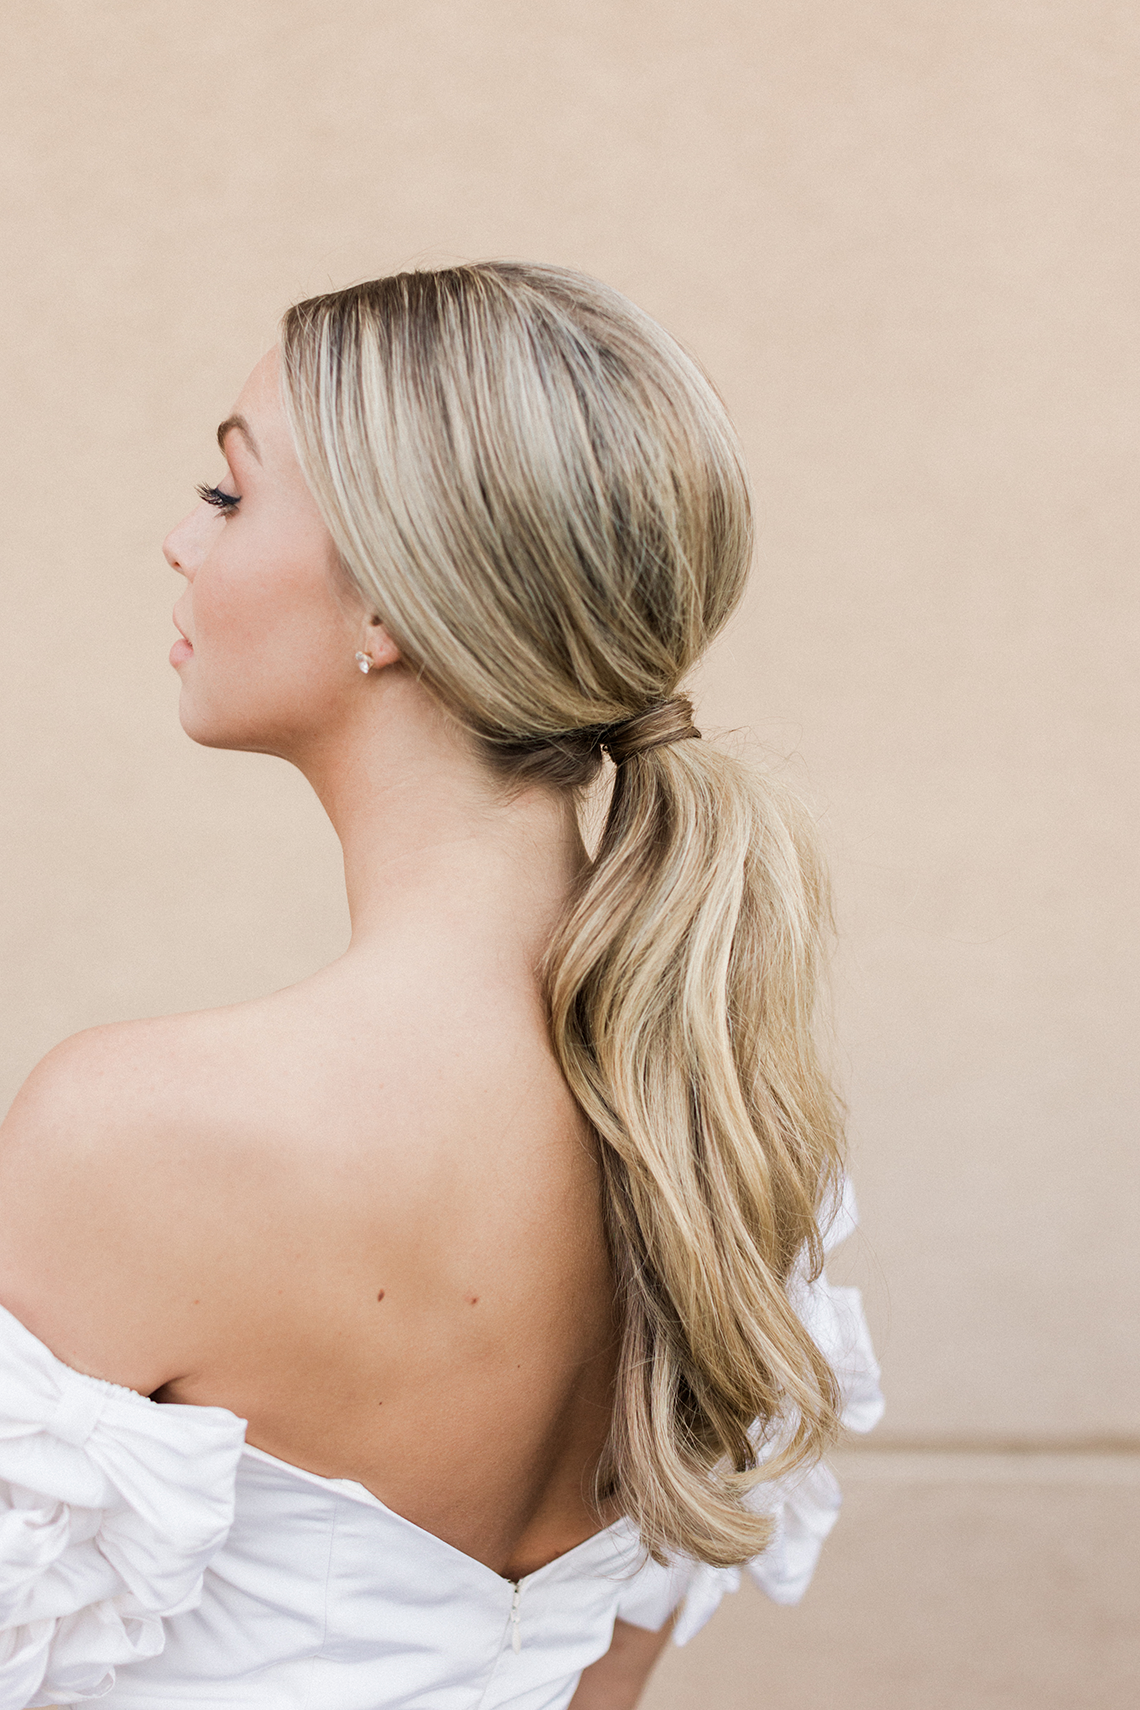 6 Gorgeous and Trendy Bridal Hairstyles for Your 2021 2022 Wedding – Valerie Darling Photography – The Bridal Bar 29